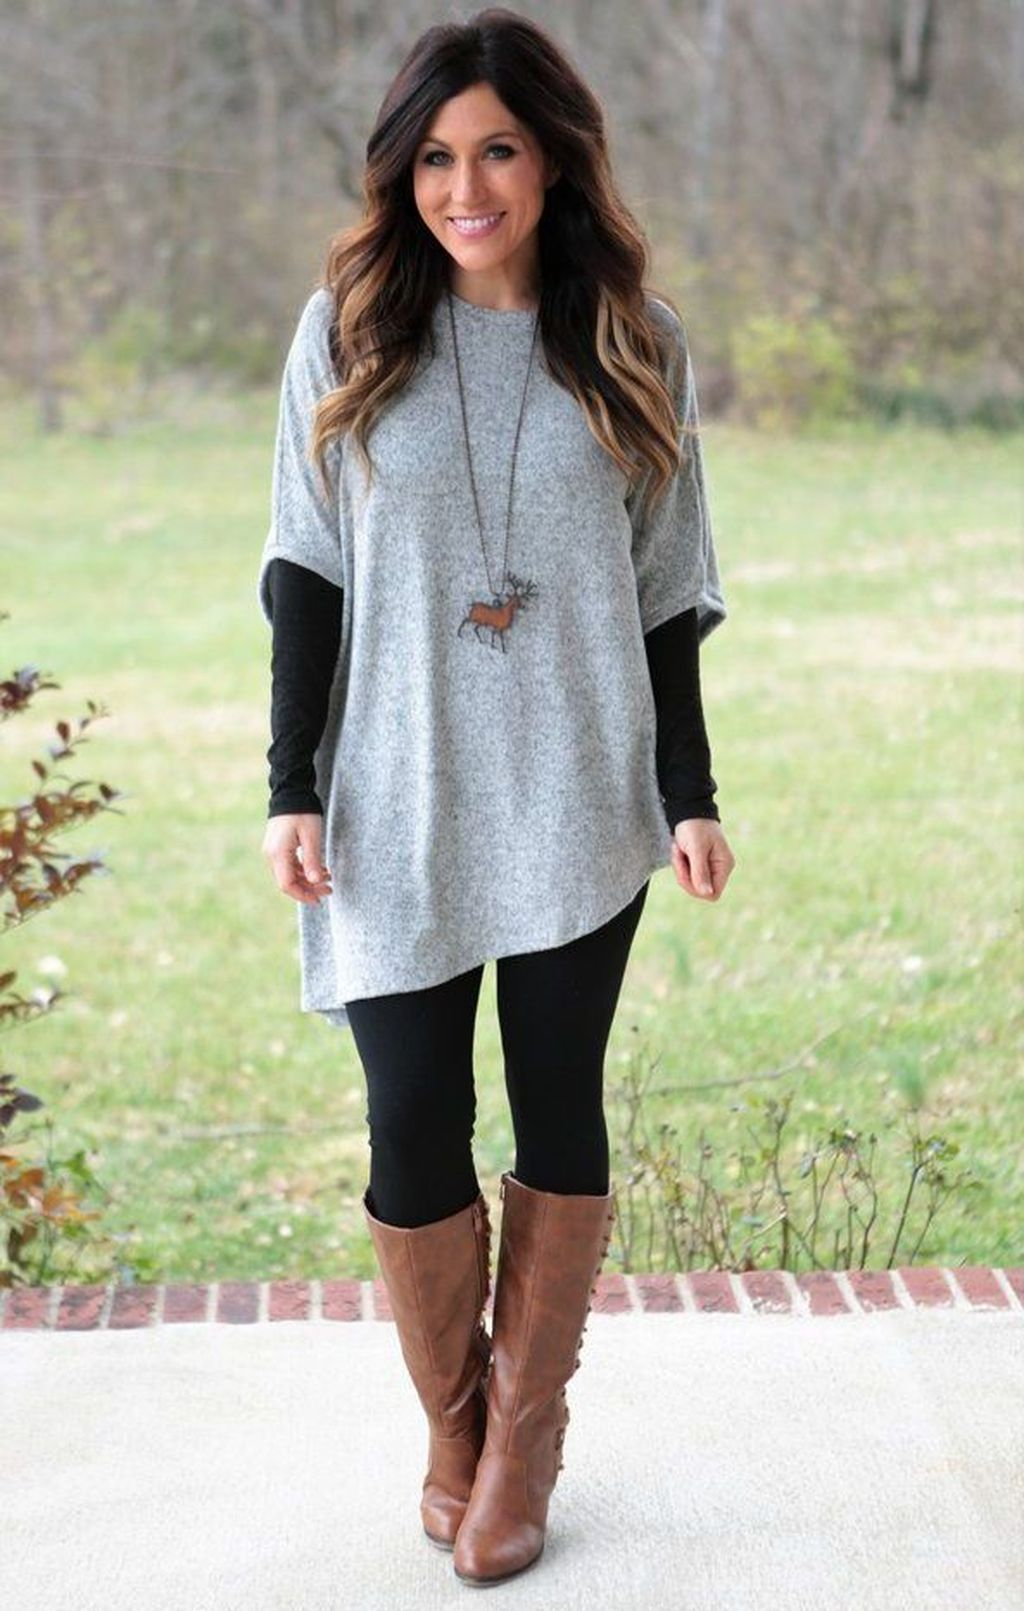 39 Cozy And Cute Winter Outfit With Legging